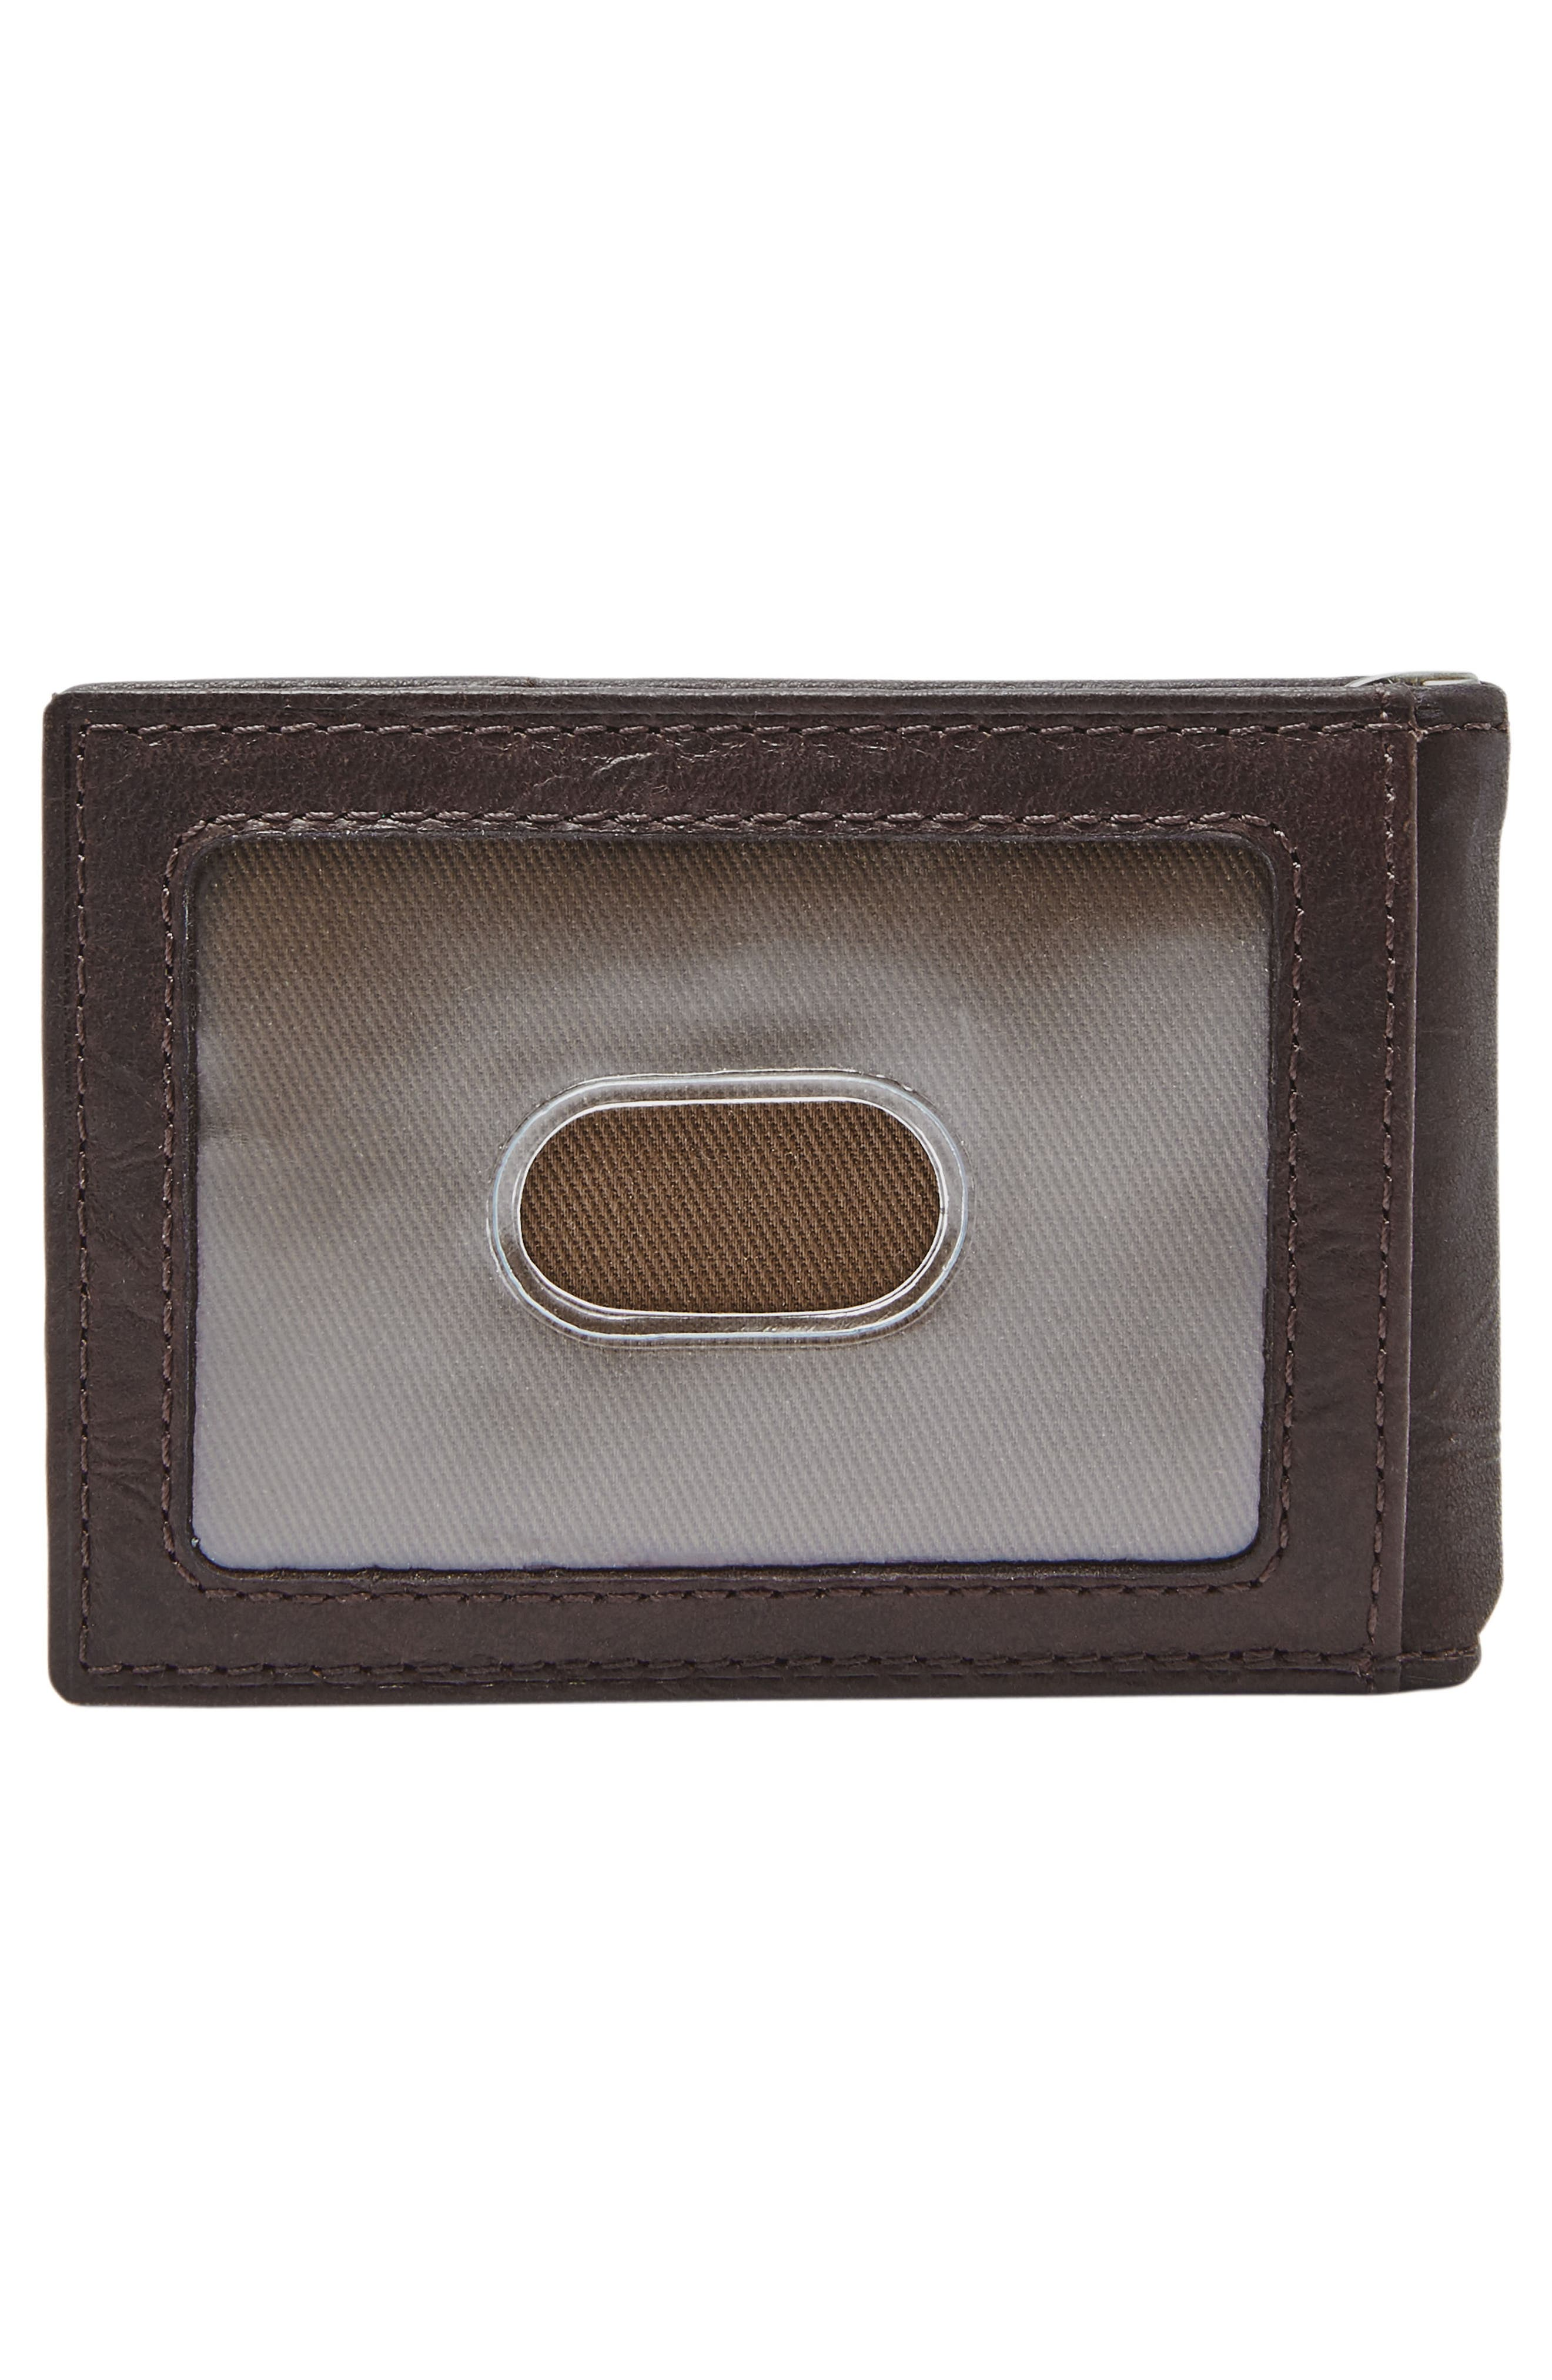 FOSSIL, Neel Leather Money Clip Wallet, Alternate thumbnail 3, color, BROWN